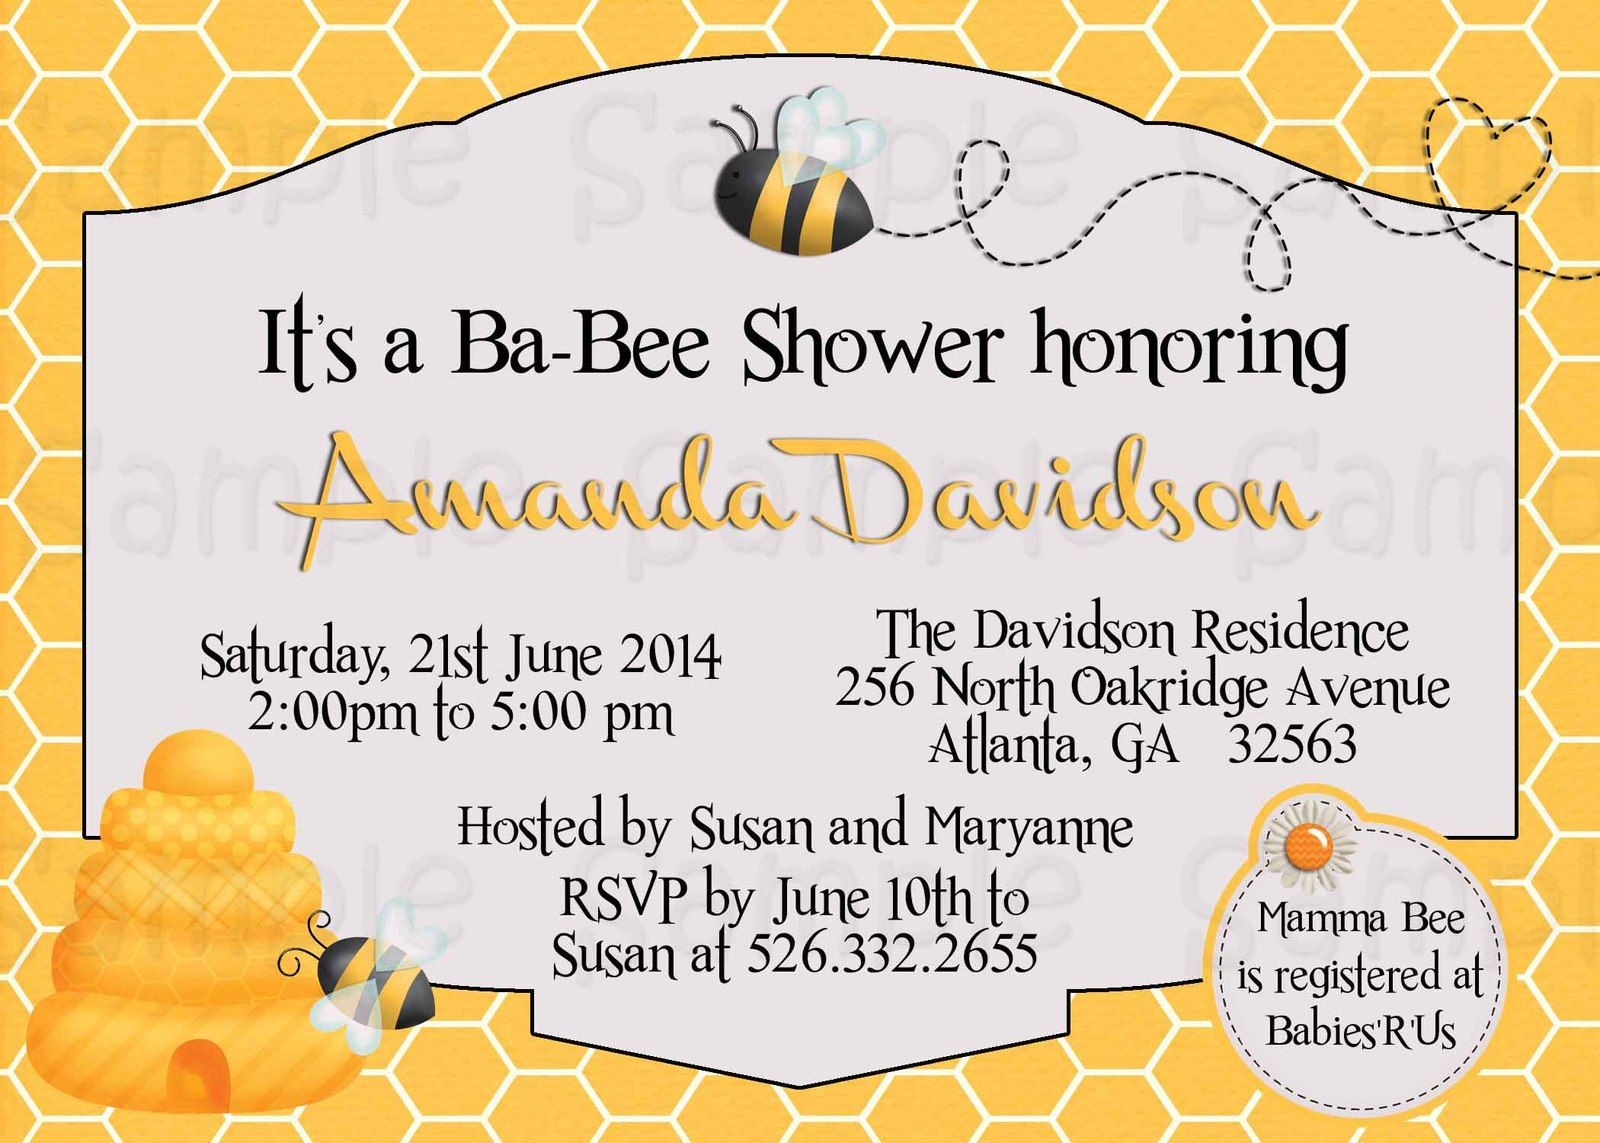 Bumble Bee Baby Shower Invitations | Custom Bumble Bee Baby Shower ...